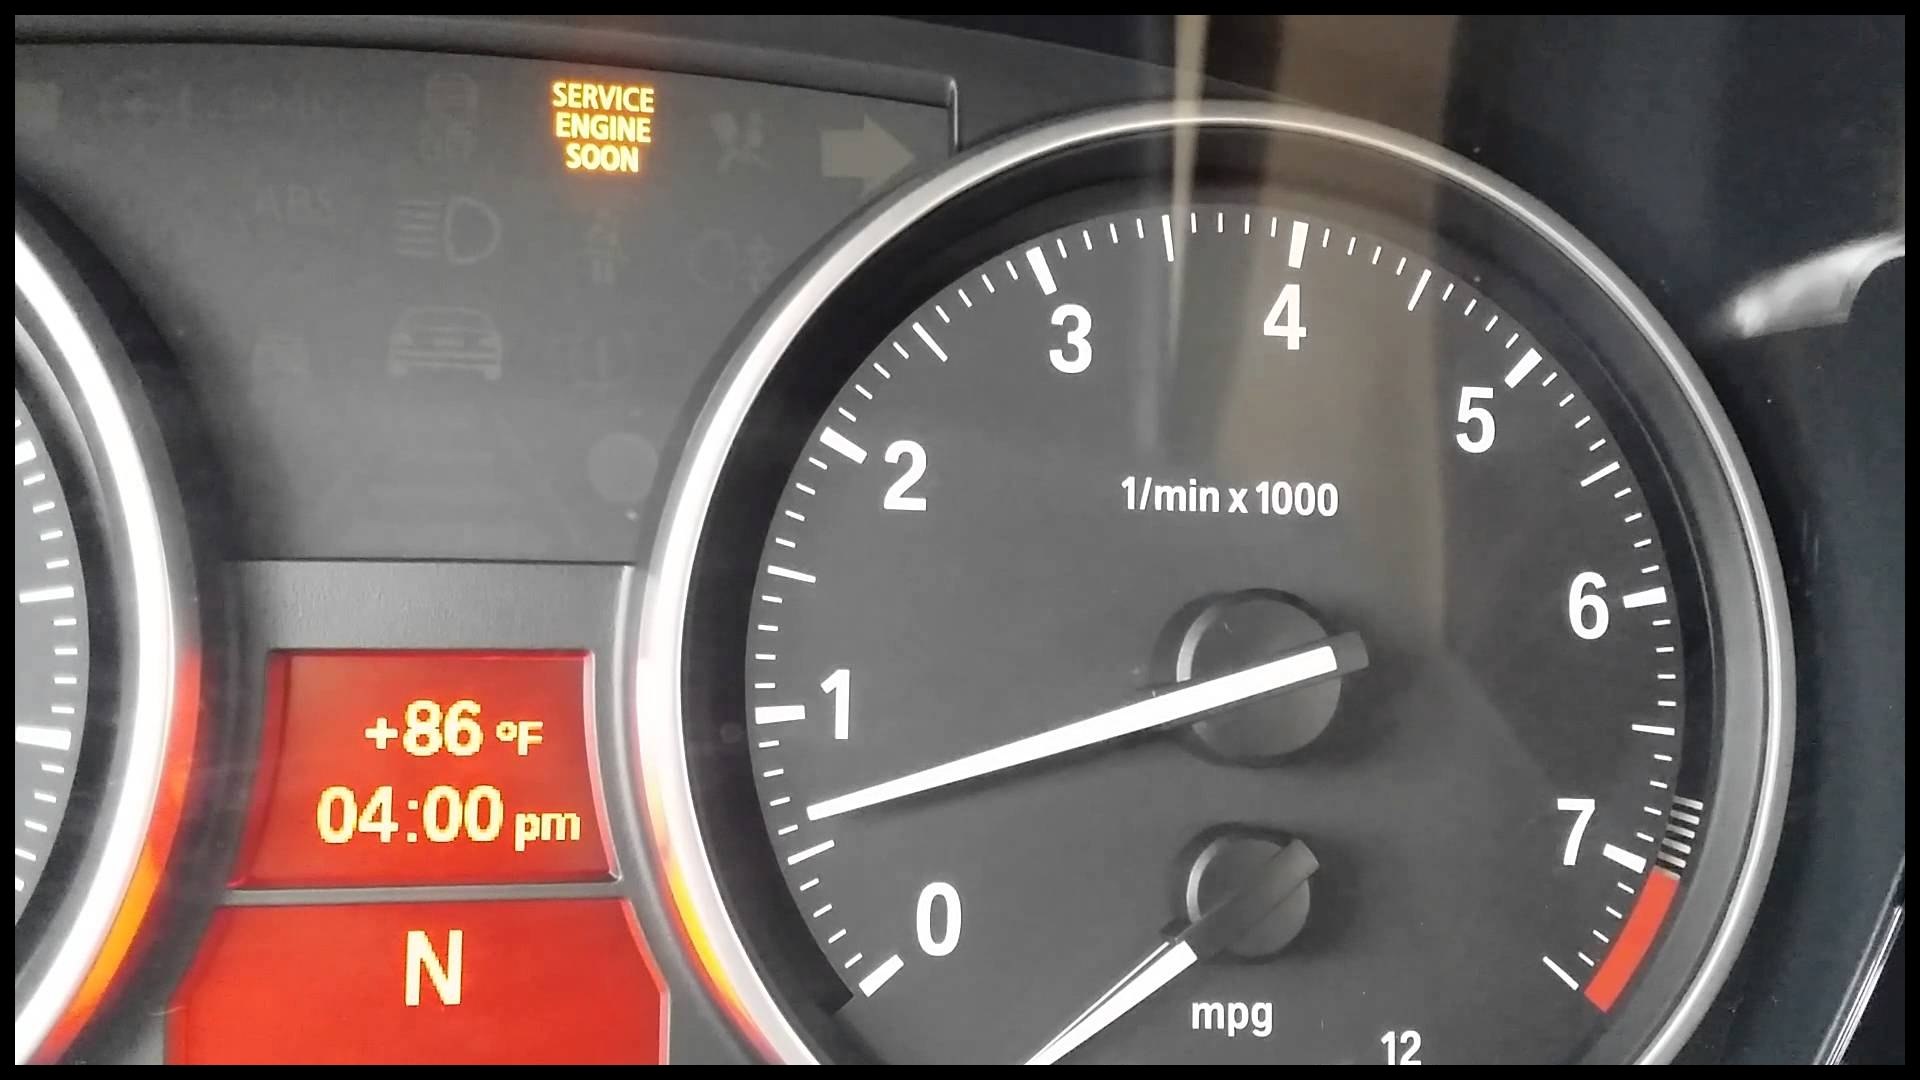 Bmw X5 Service Engine Soon Light Reset Centralroots